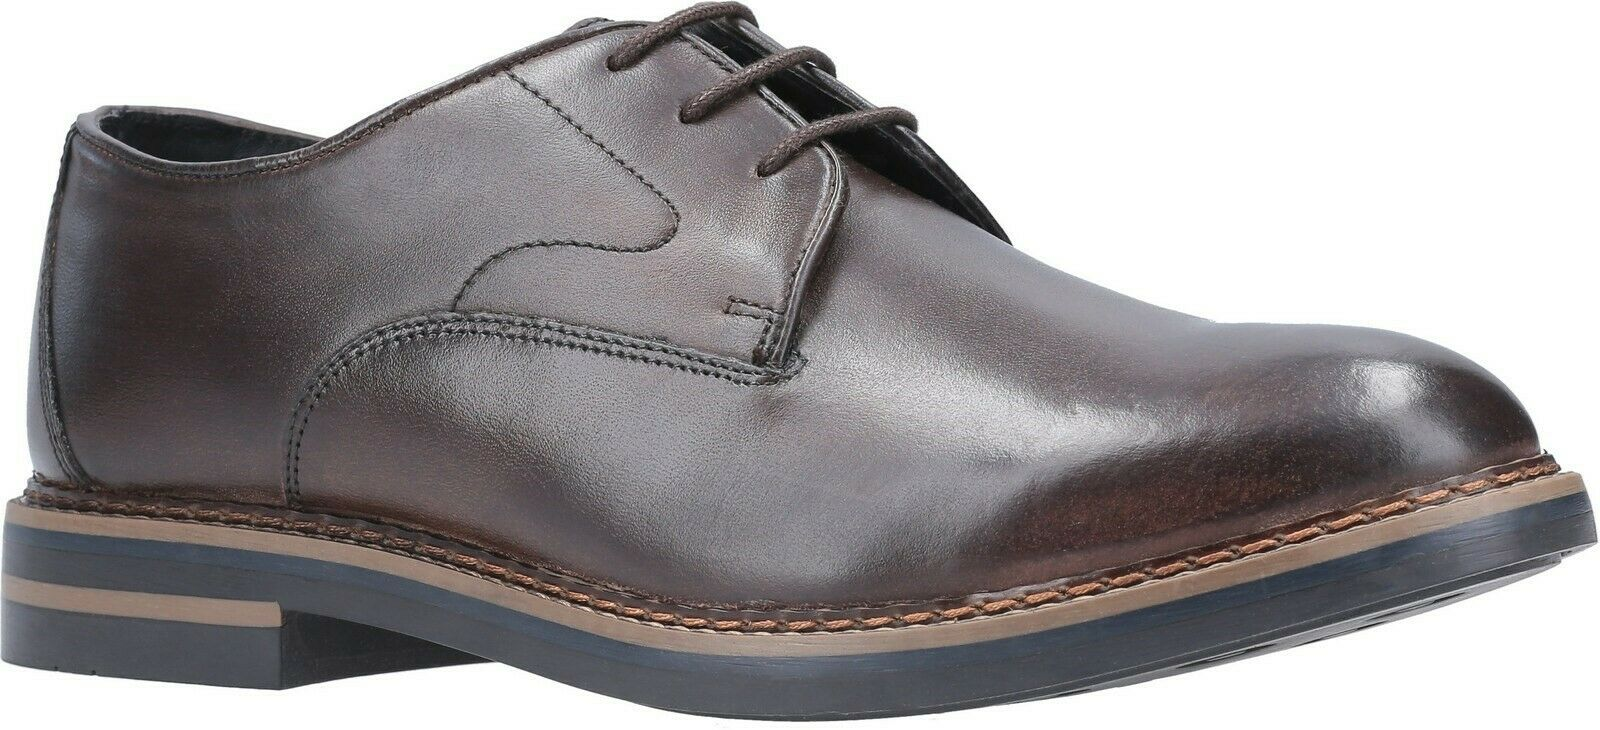 Base London Wayne burnished cocoa leather mens lace up derby schuhe